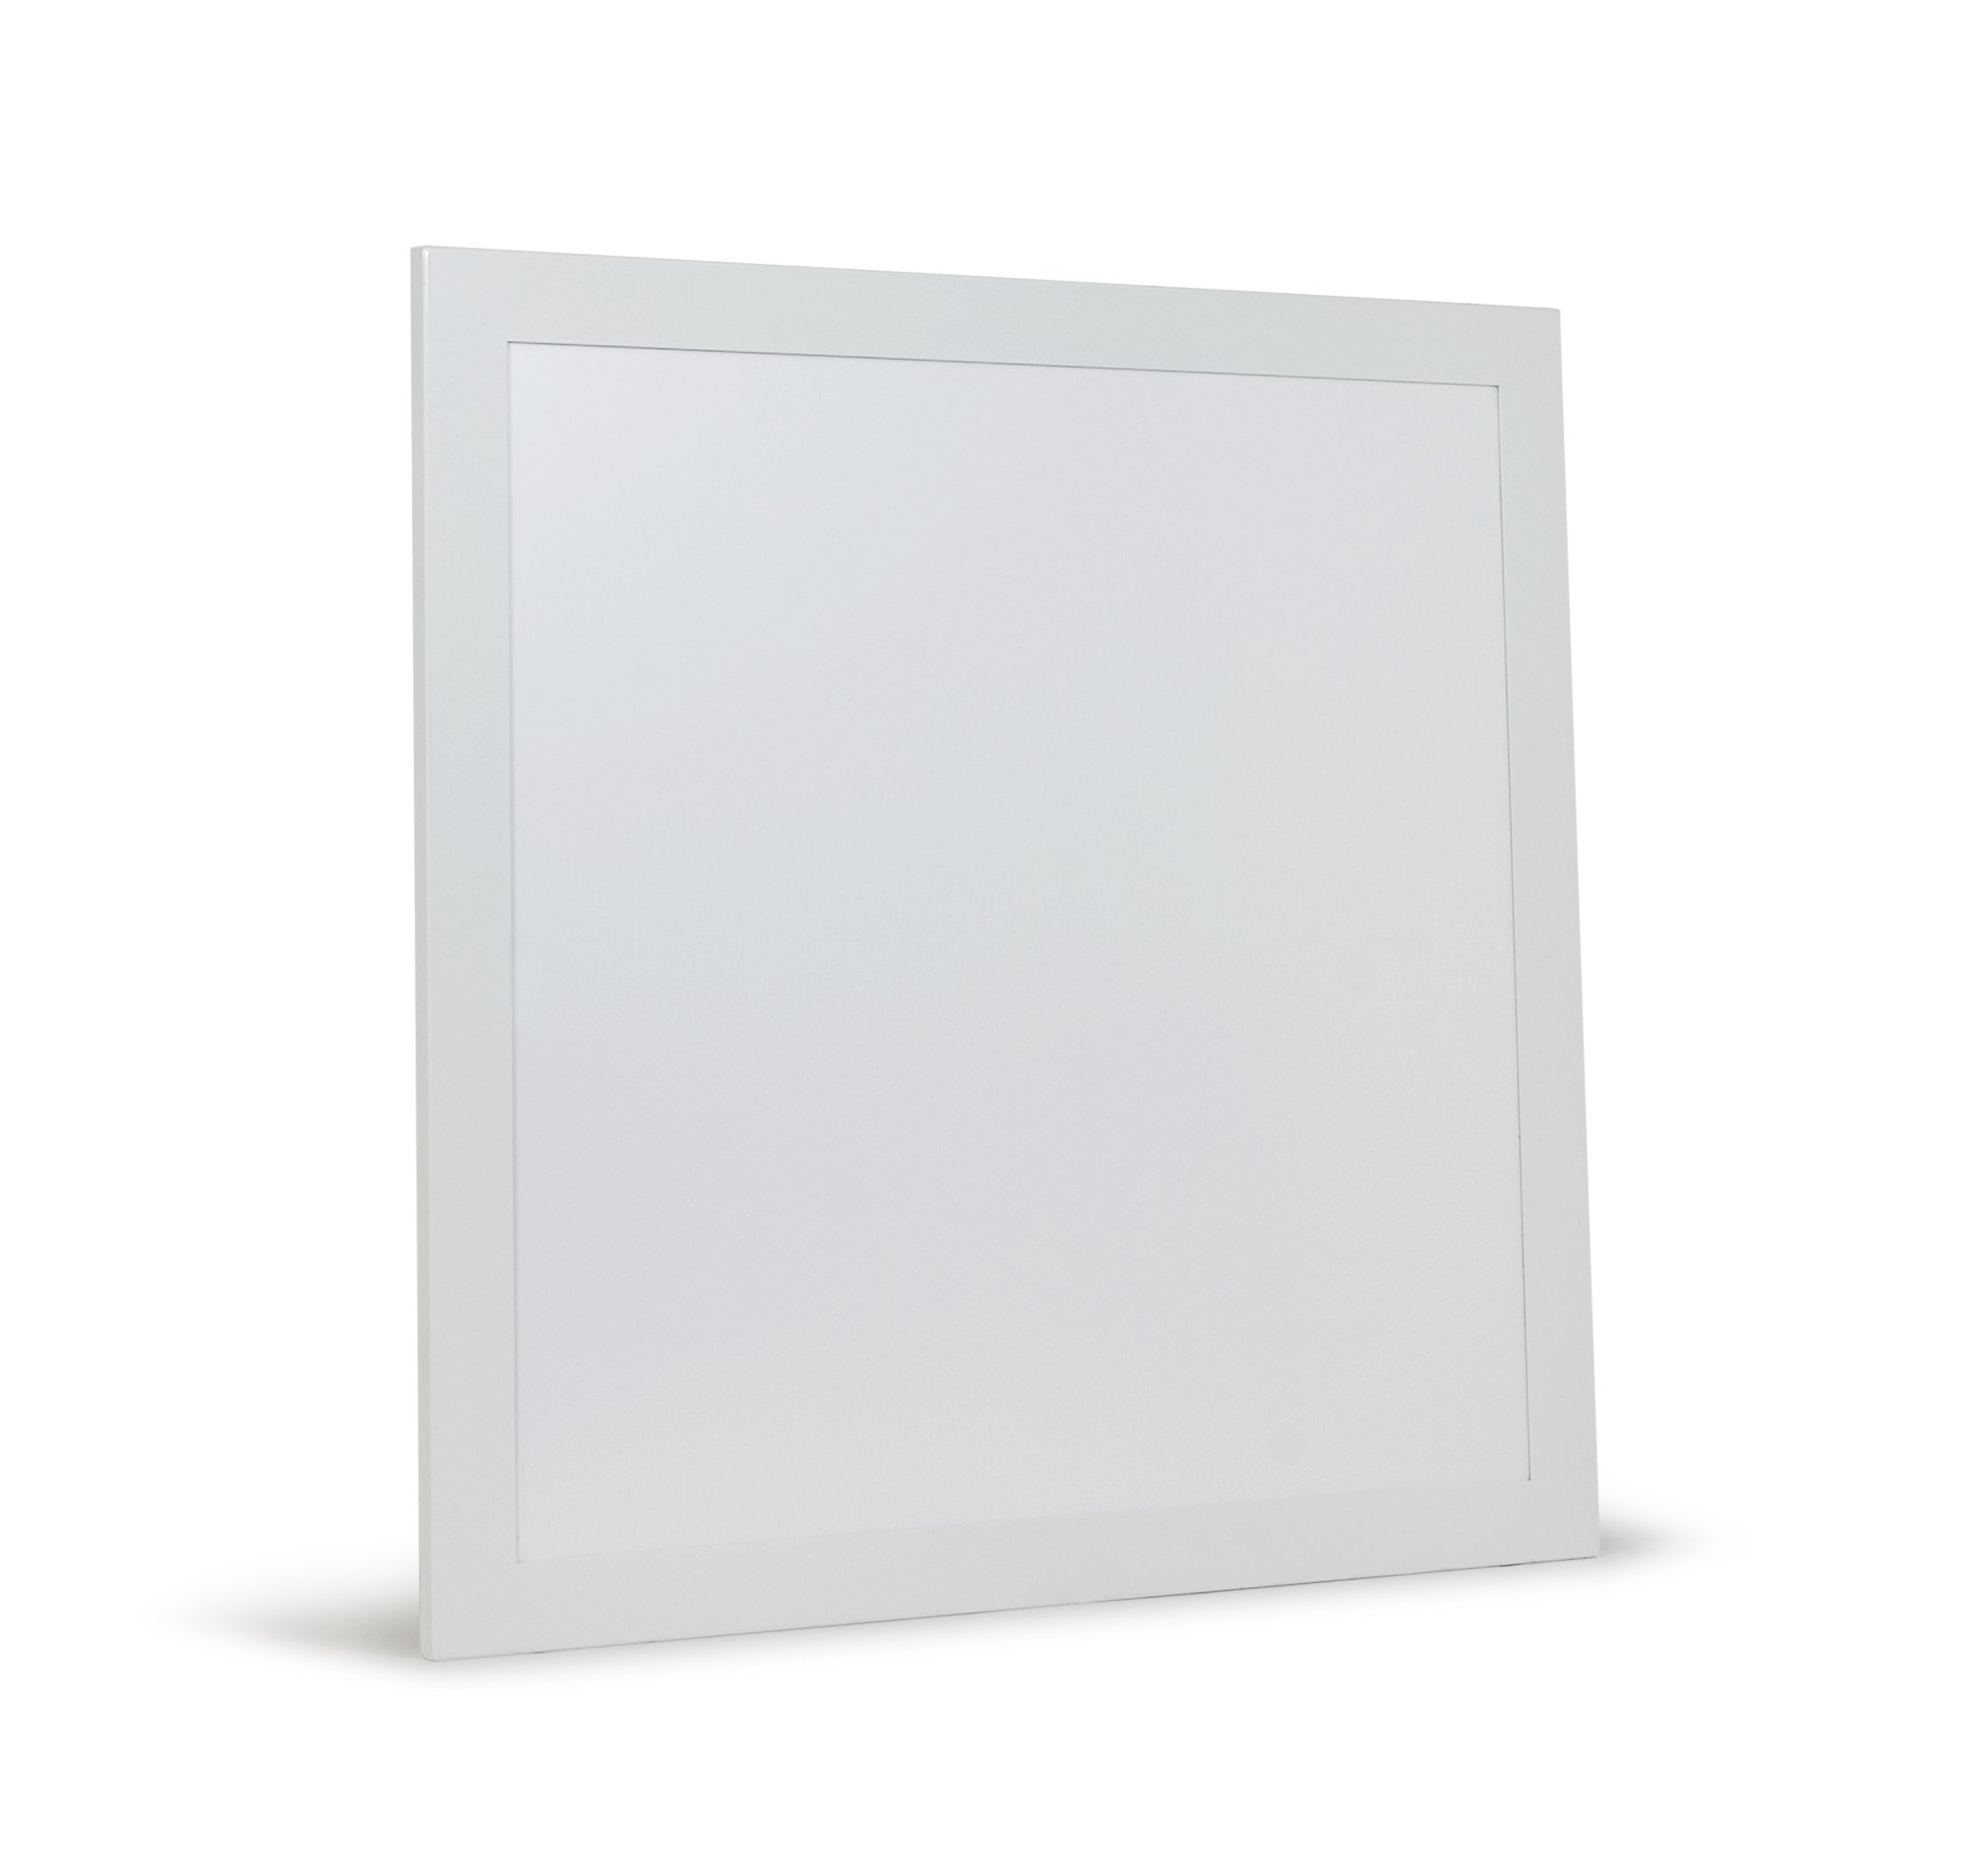 Pixi 2' x 2' FLatlight TM Edge-lit LED Luminaire 3000K (soft white) 110-300V